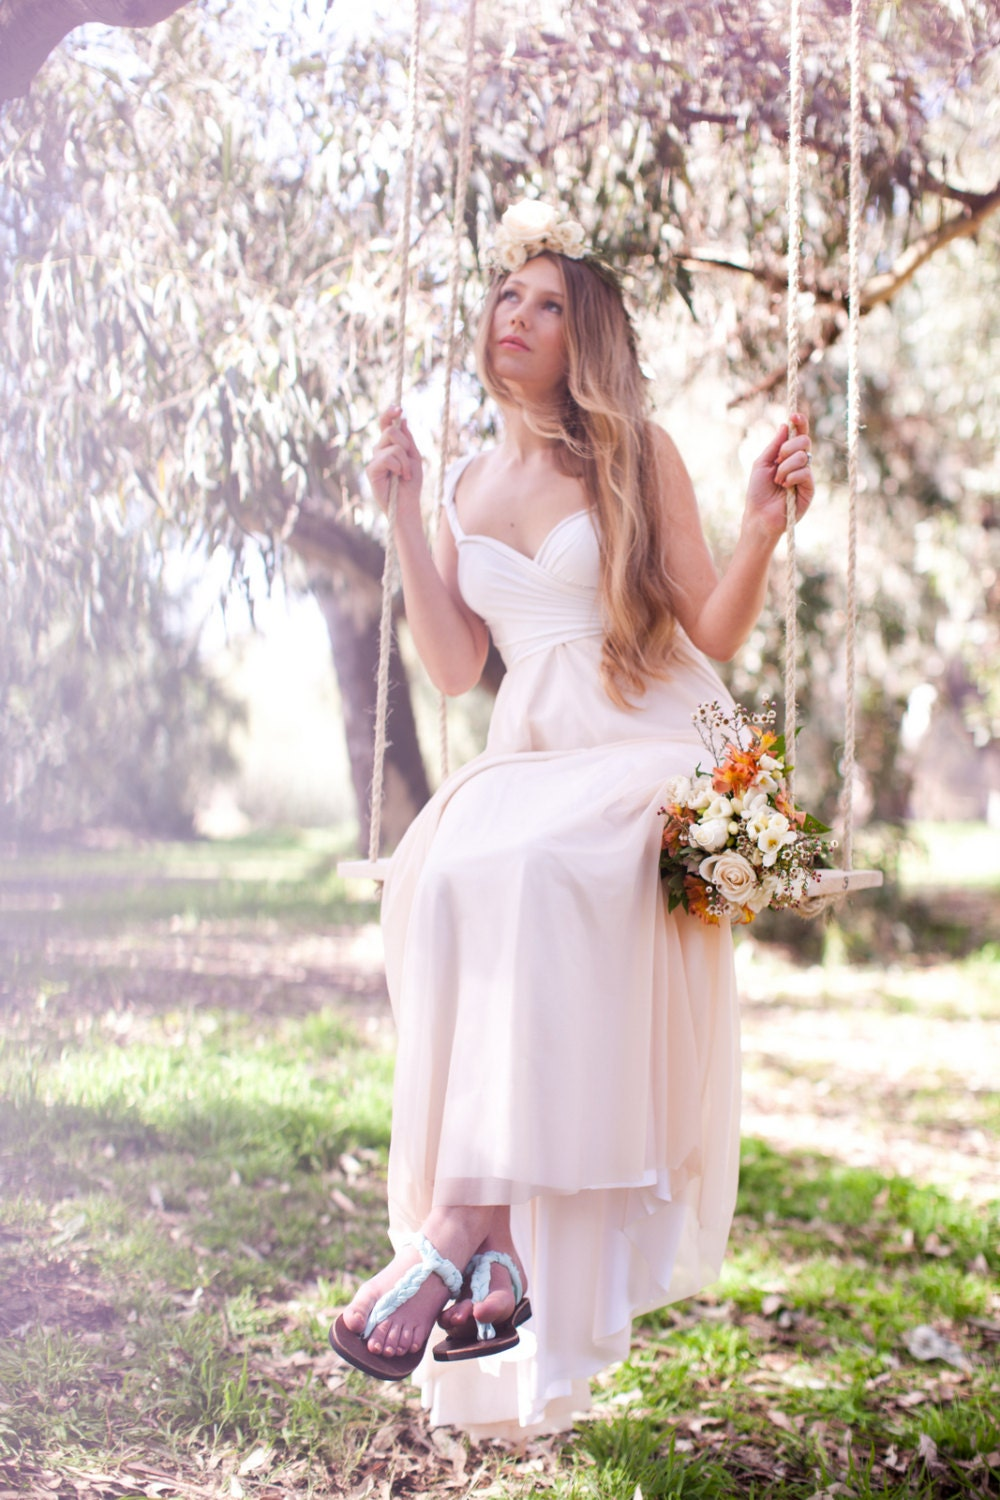 Bridal Infinity Wrap Dress with Train and Chiffon Overlay -Cameo Nude Sheer, Magnolia Off White